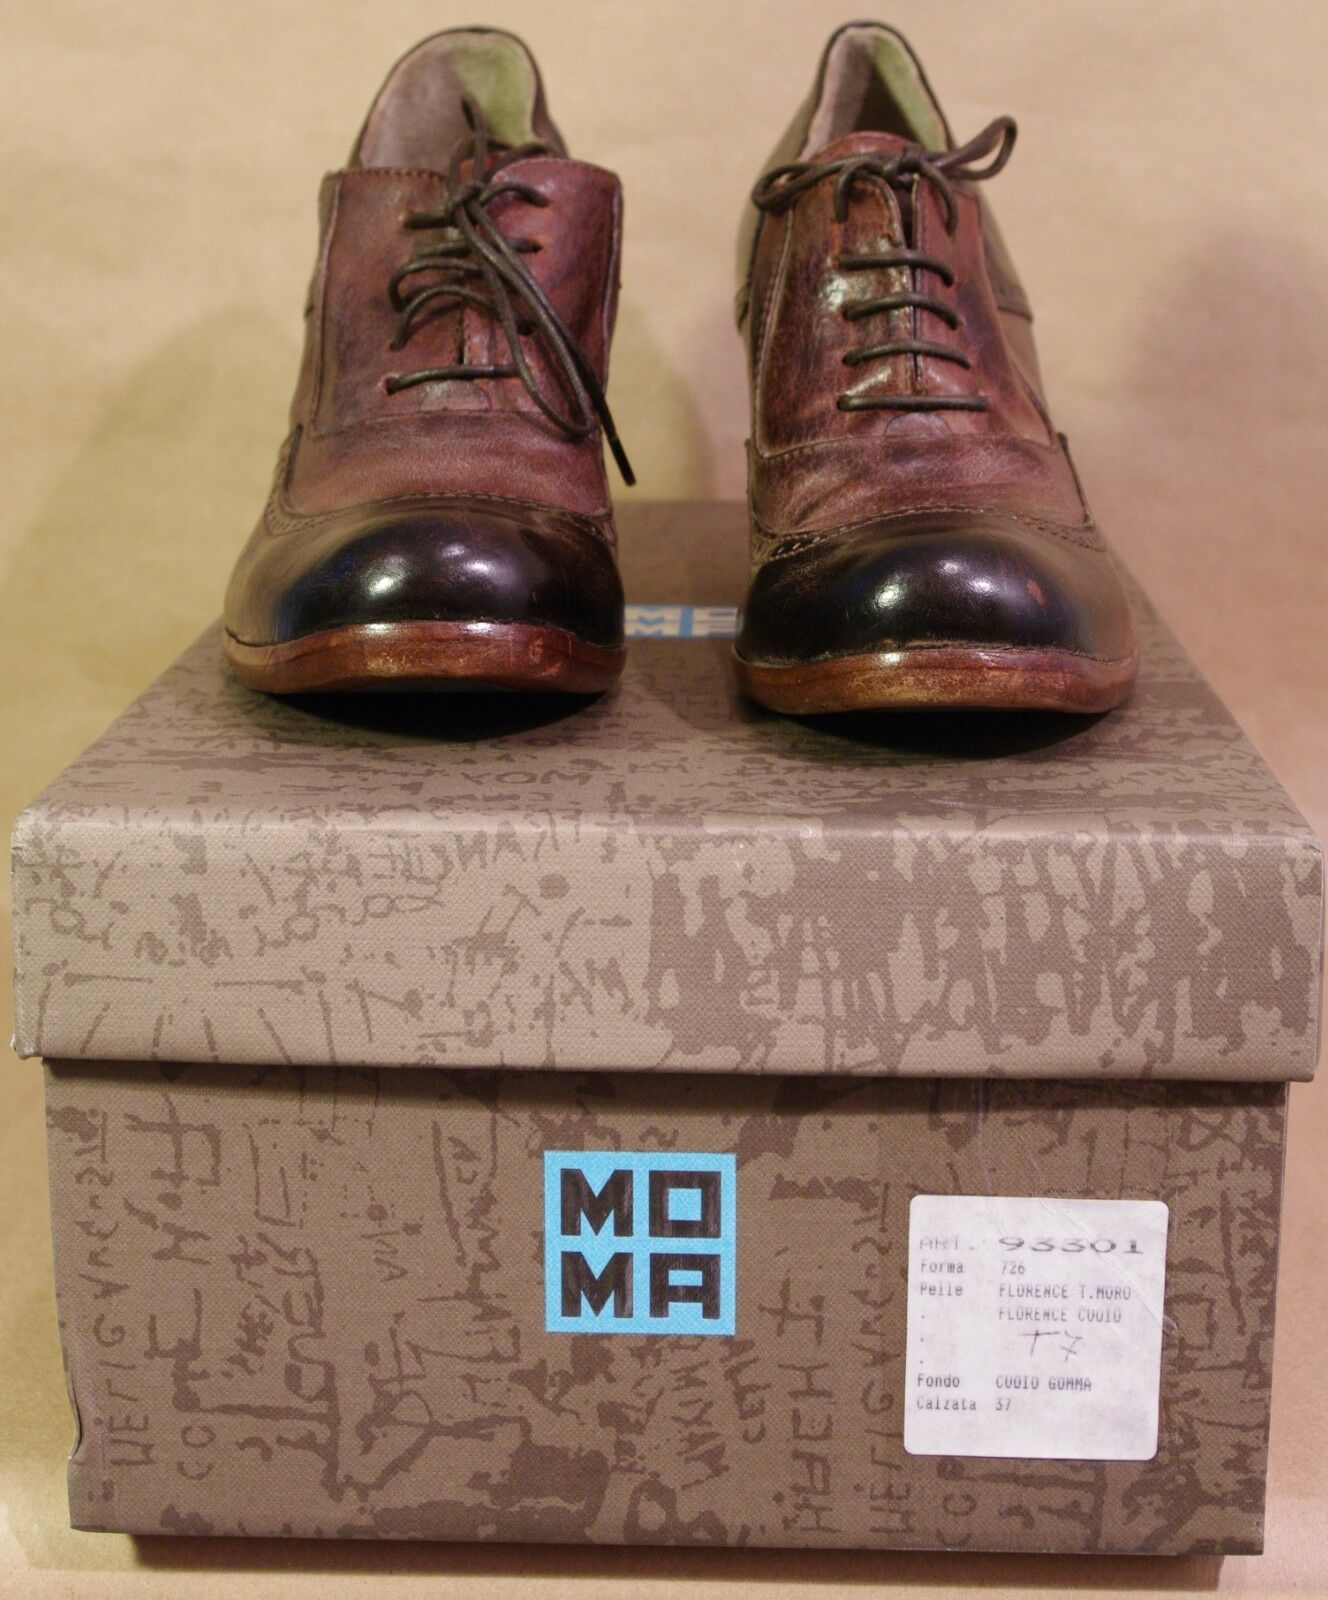 bd24887b50 Moma Moma Moma Heeled Two-Tone Laceup Brown Oxfords NIB EUR 37 ...